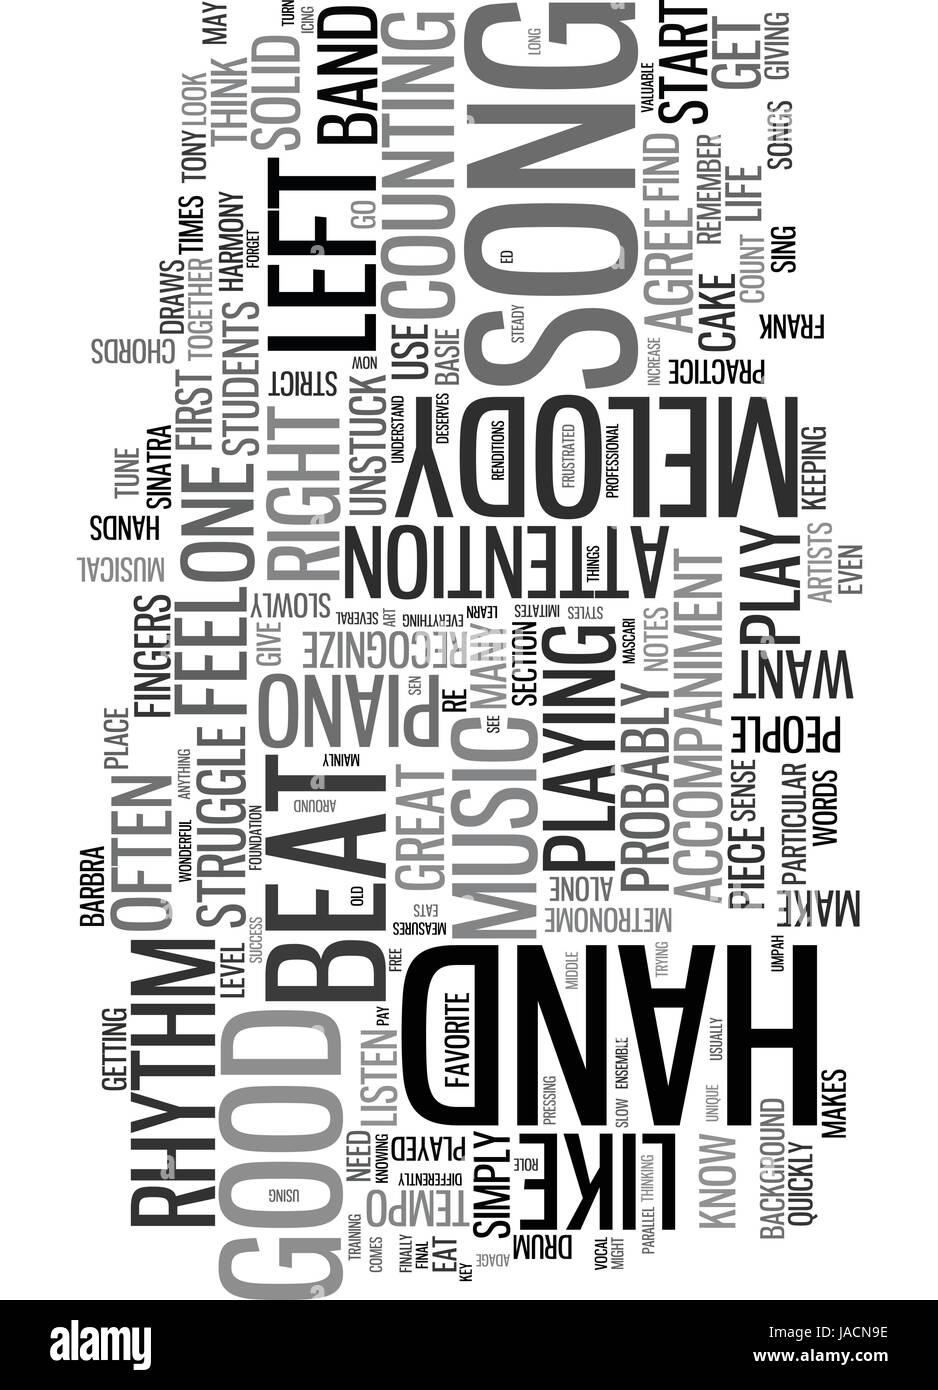 WHAT MAKES A PIECE OF MUSIC A GOOD SONG TEXT WORD CLOUD CONCEPT - Stock Image